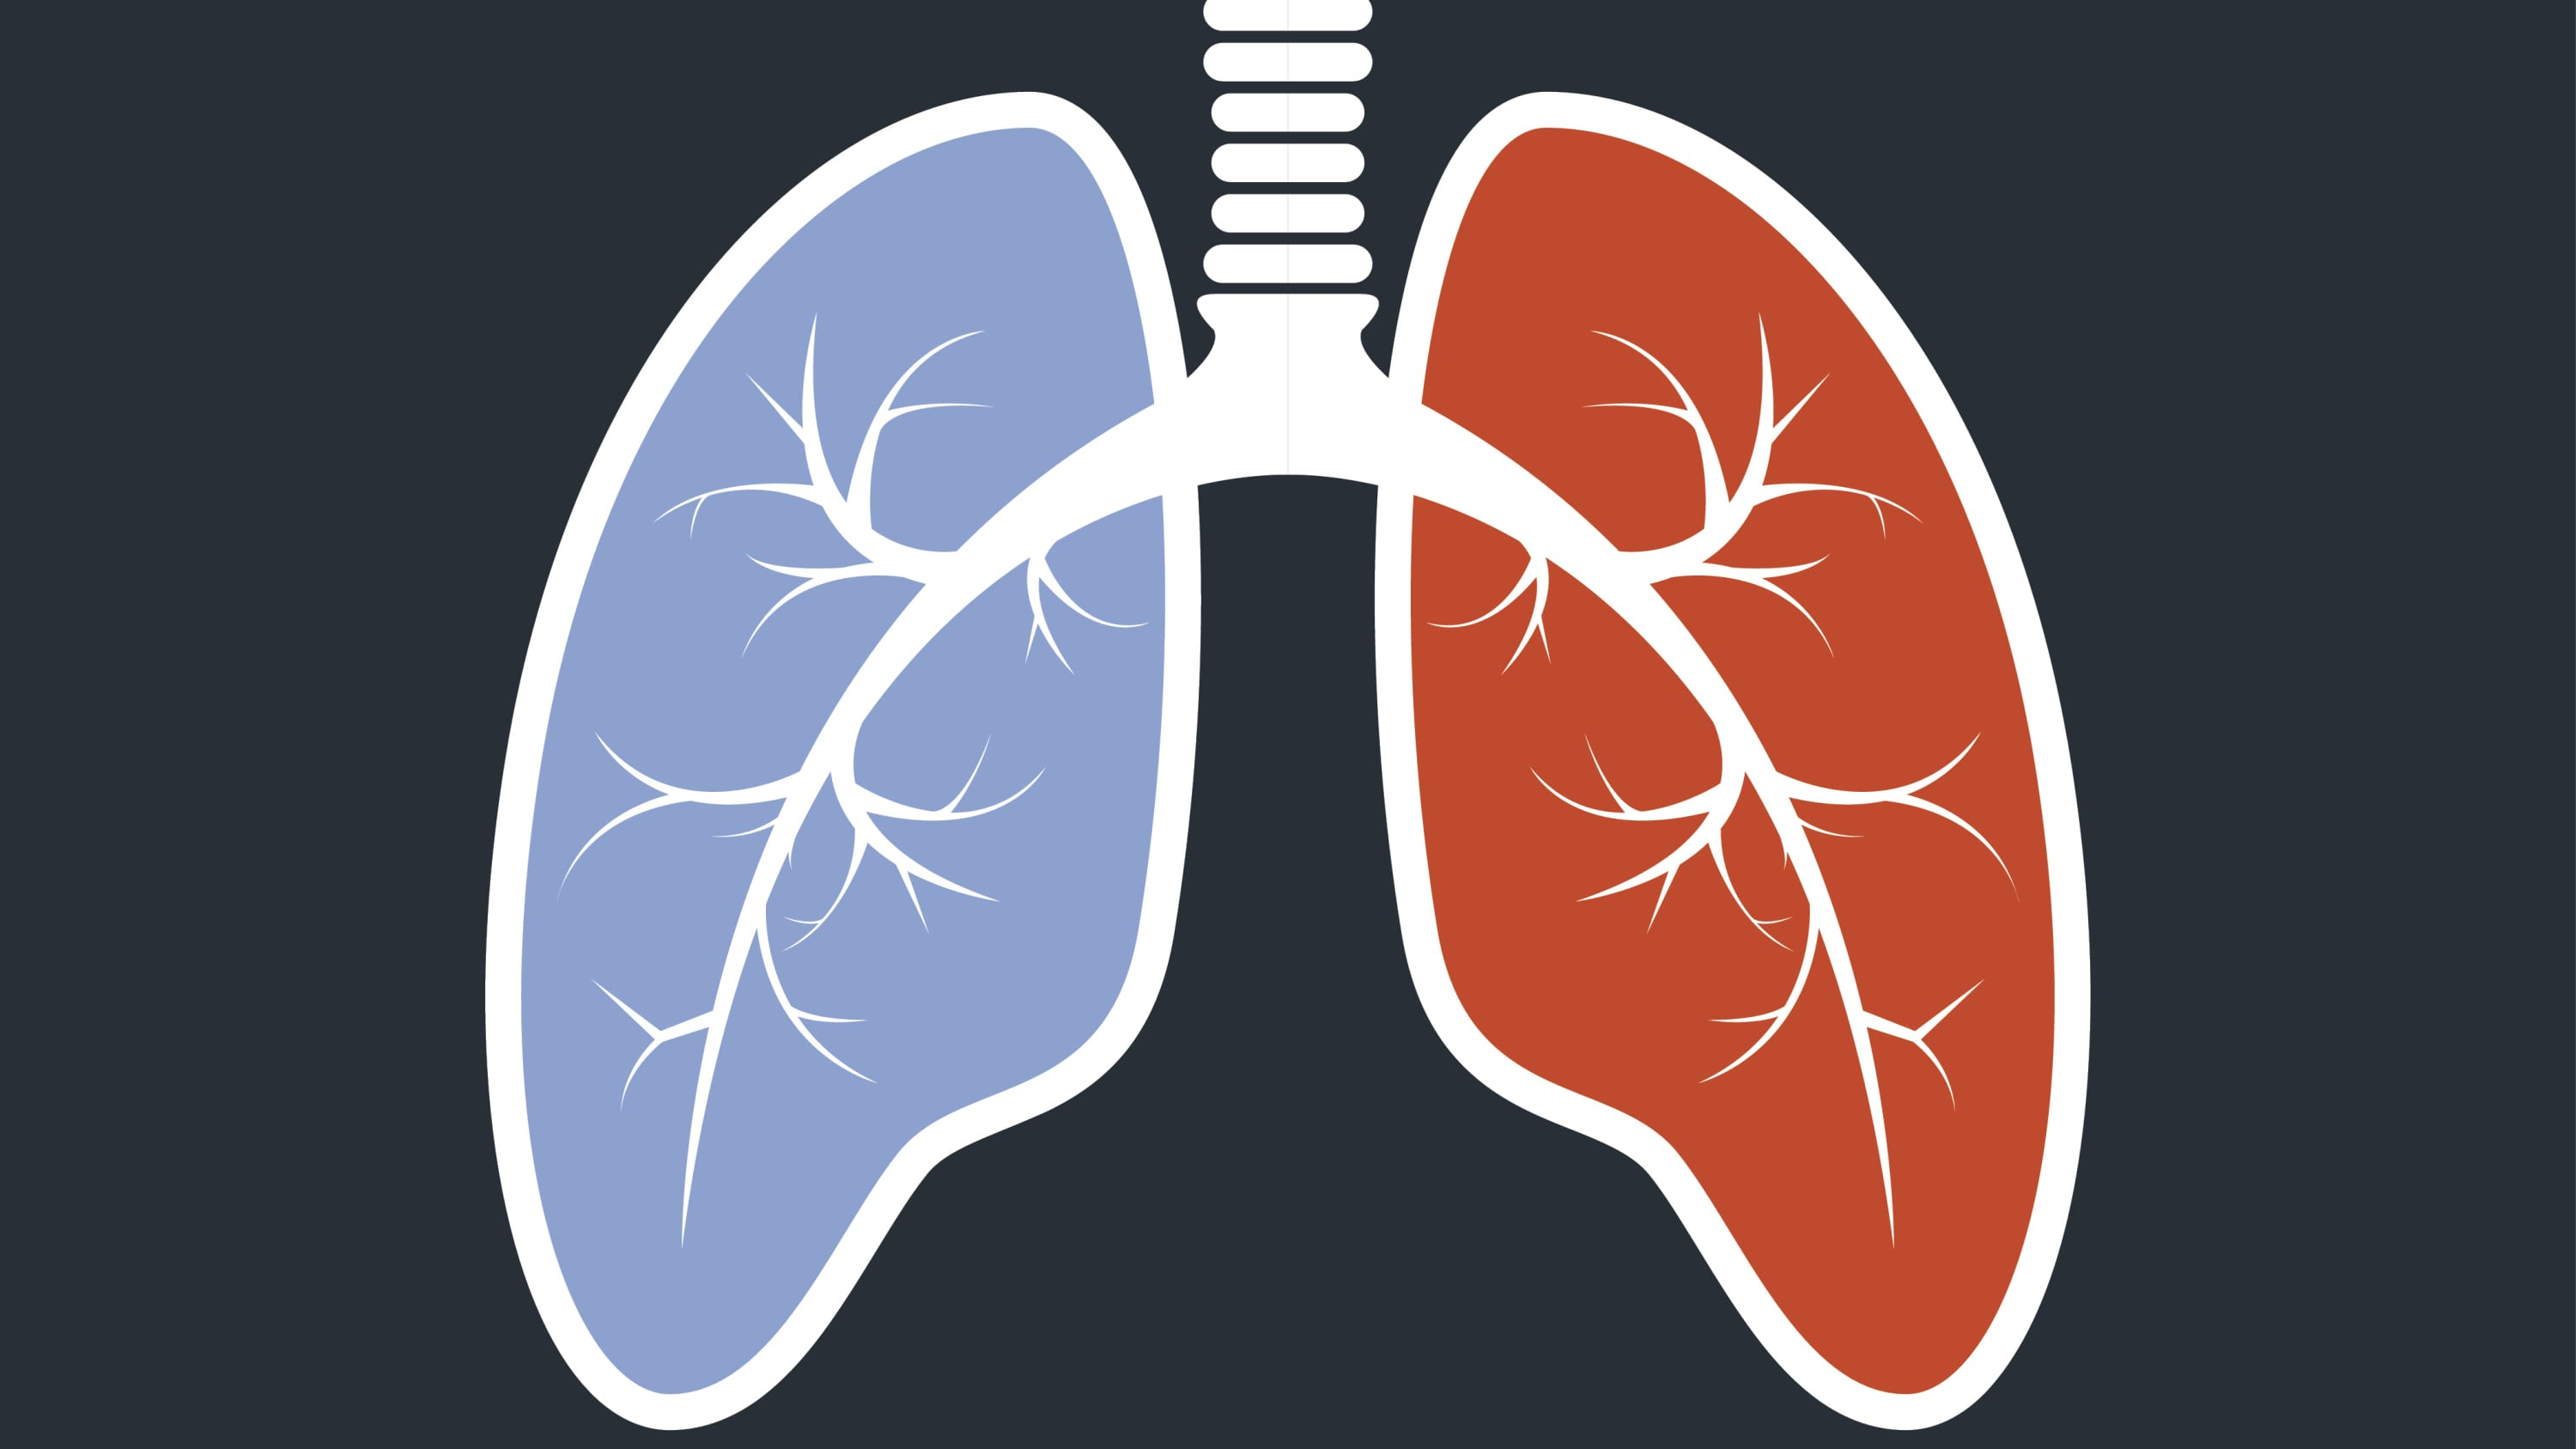 illustration of lungs, as a way of describing pulmonary arterial hypertension